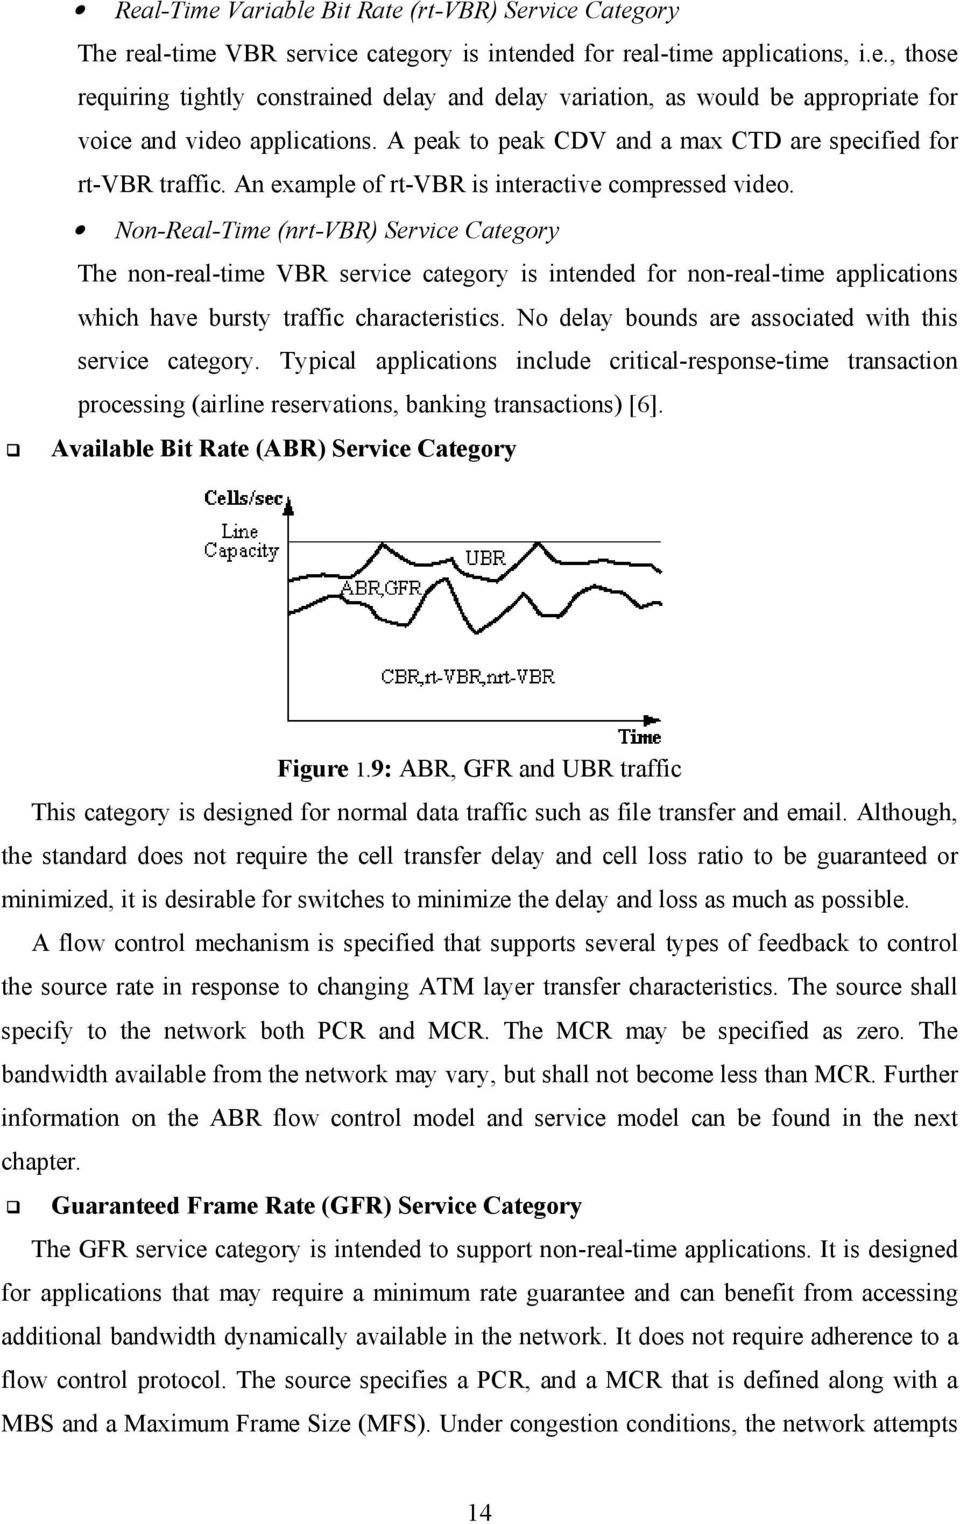 Non-Real-Time (nrt-vbr) Service Category The non-real-time VBR service category is intended for non-real-time applications which have bursty traffic characteristics.